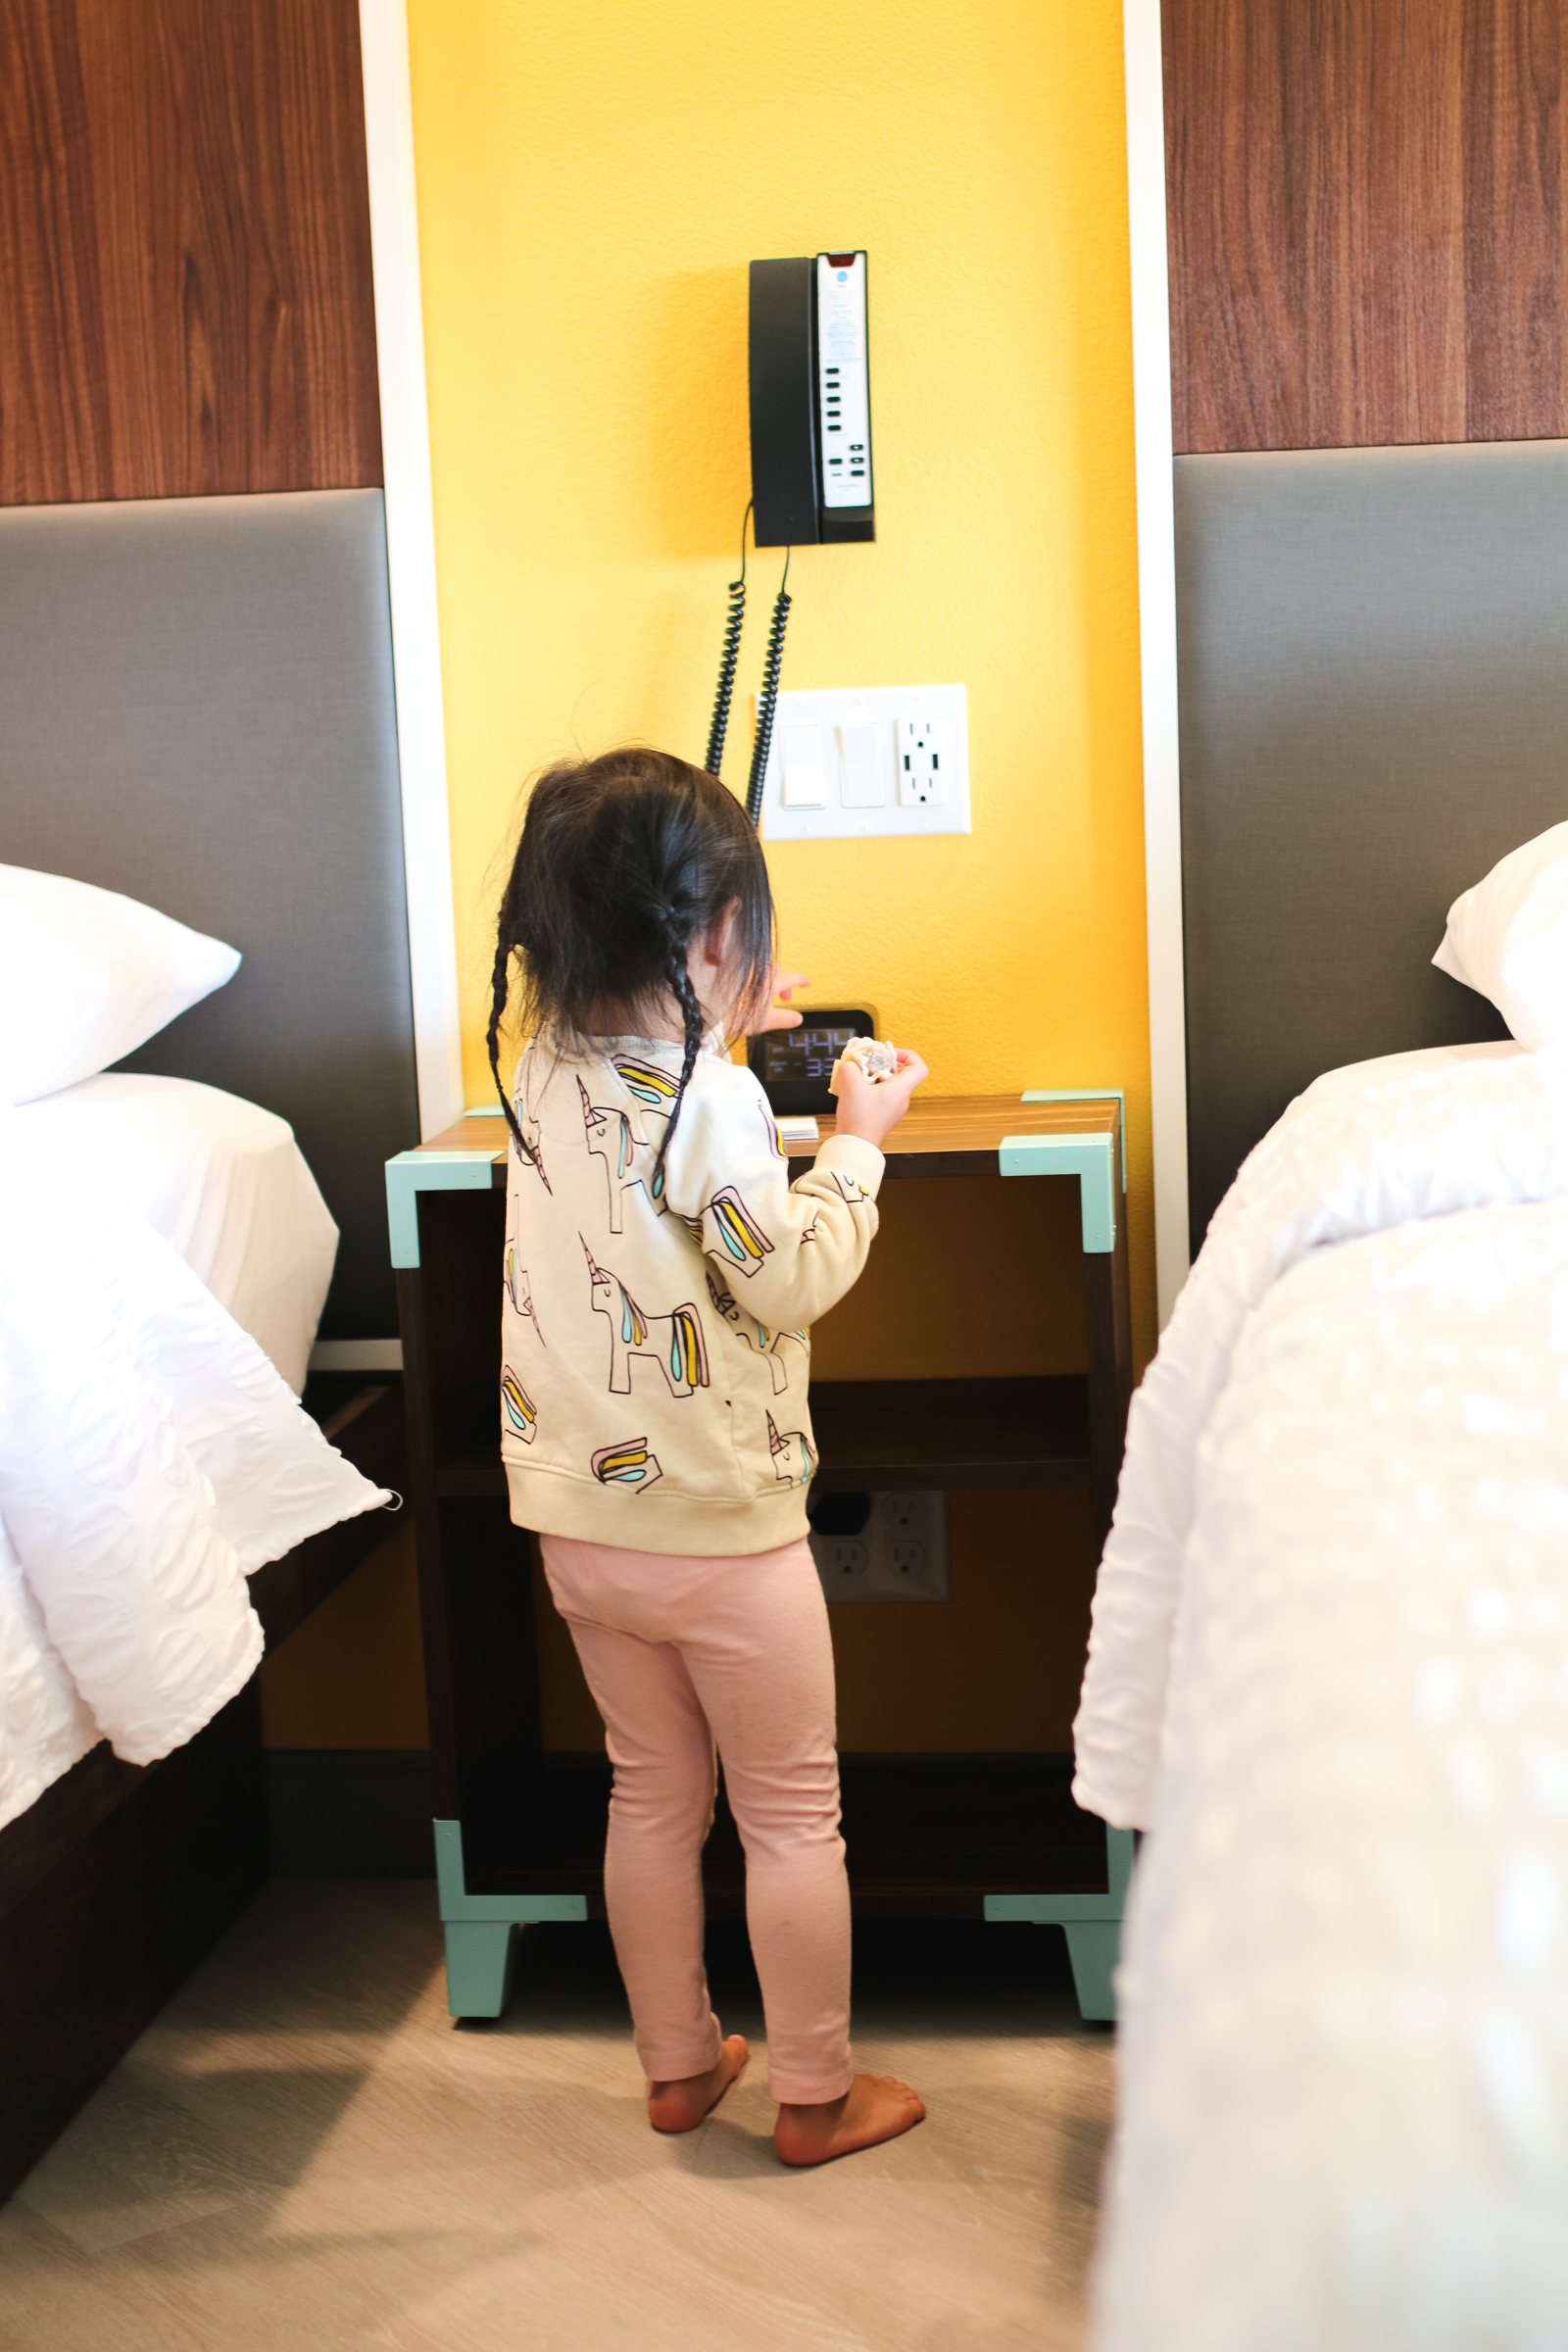 Our Awesome Stay at the Tru by Hilton in Cheyenne, WY by popular Utah blogger Sandy A La Mode